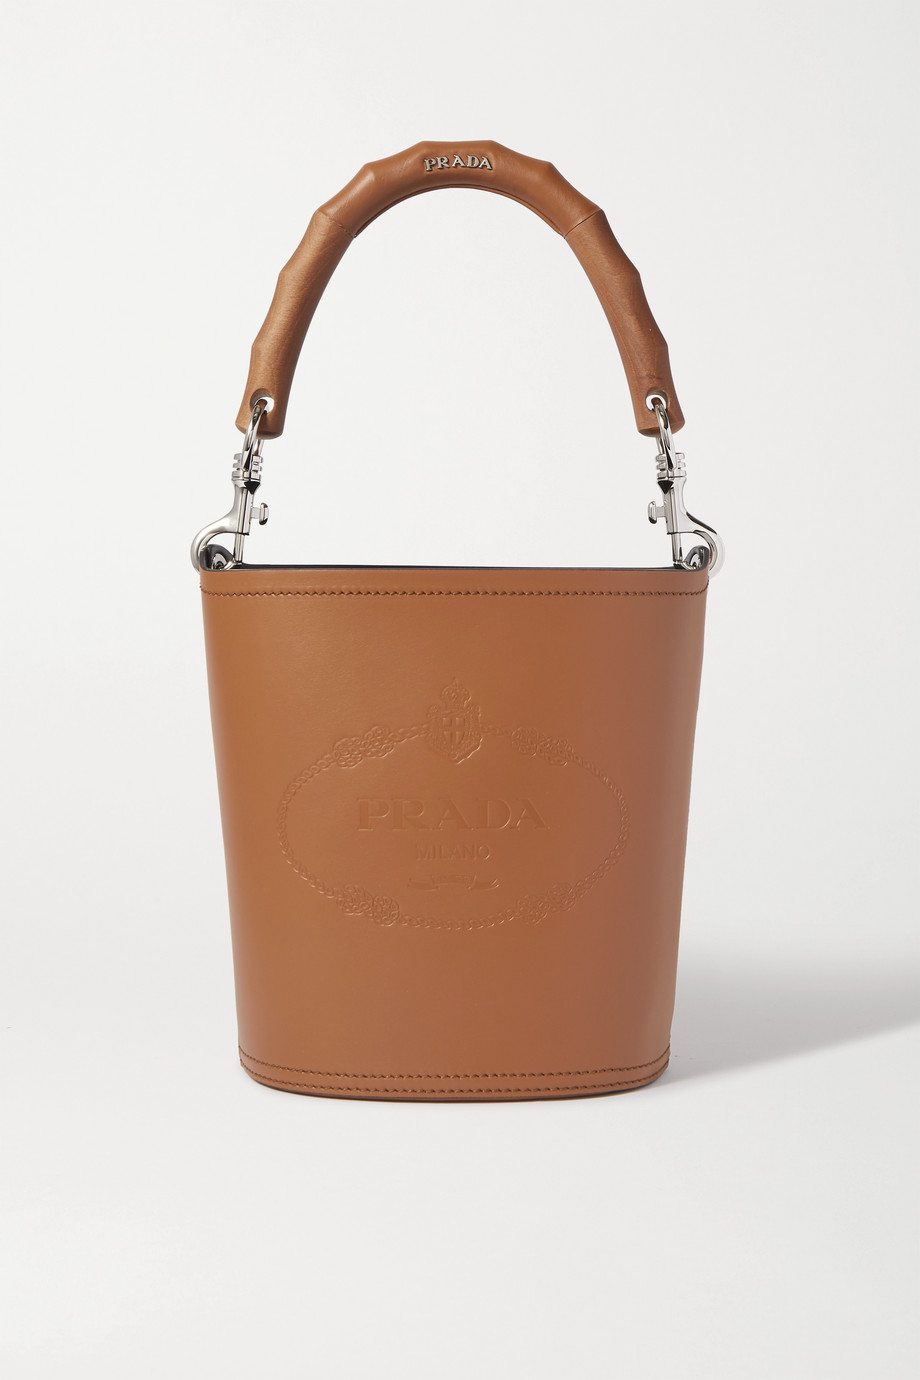 Prada Embossed leather bucket bag